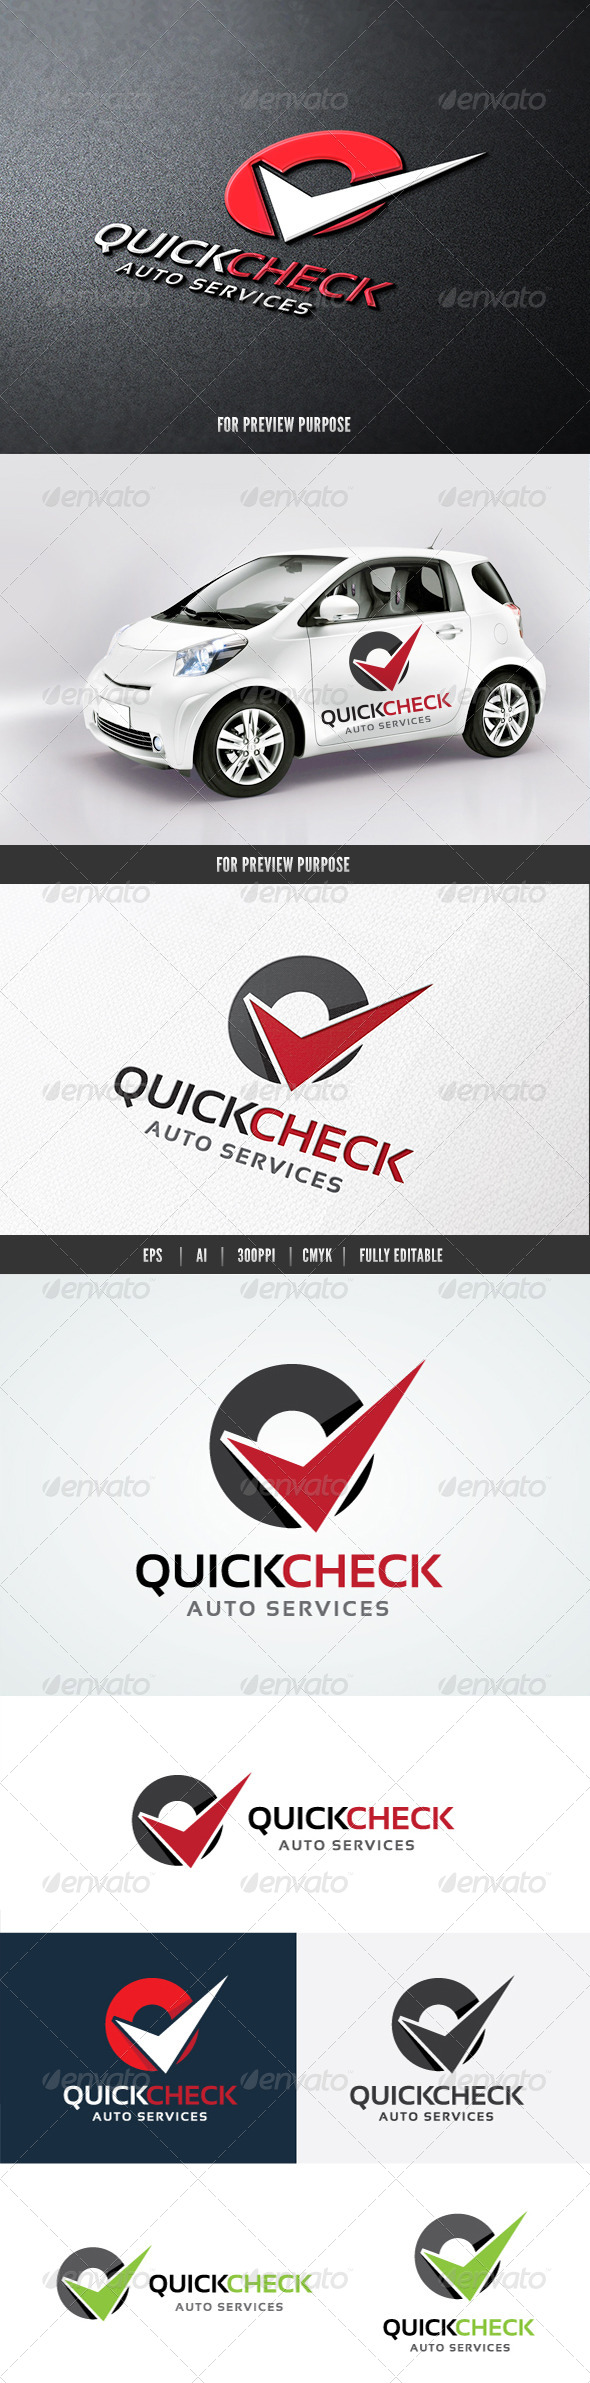 GraphicRiver Quick Check Auto Services 8329879